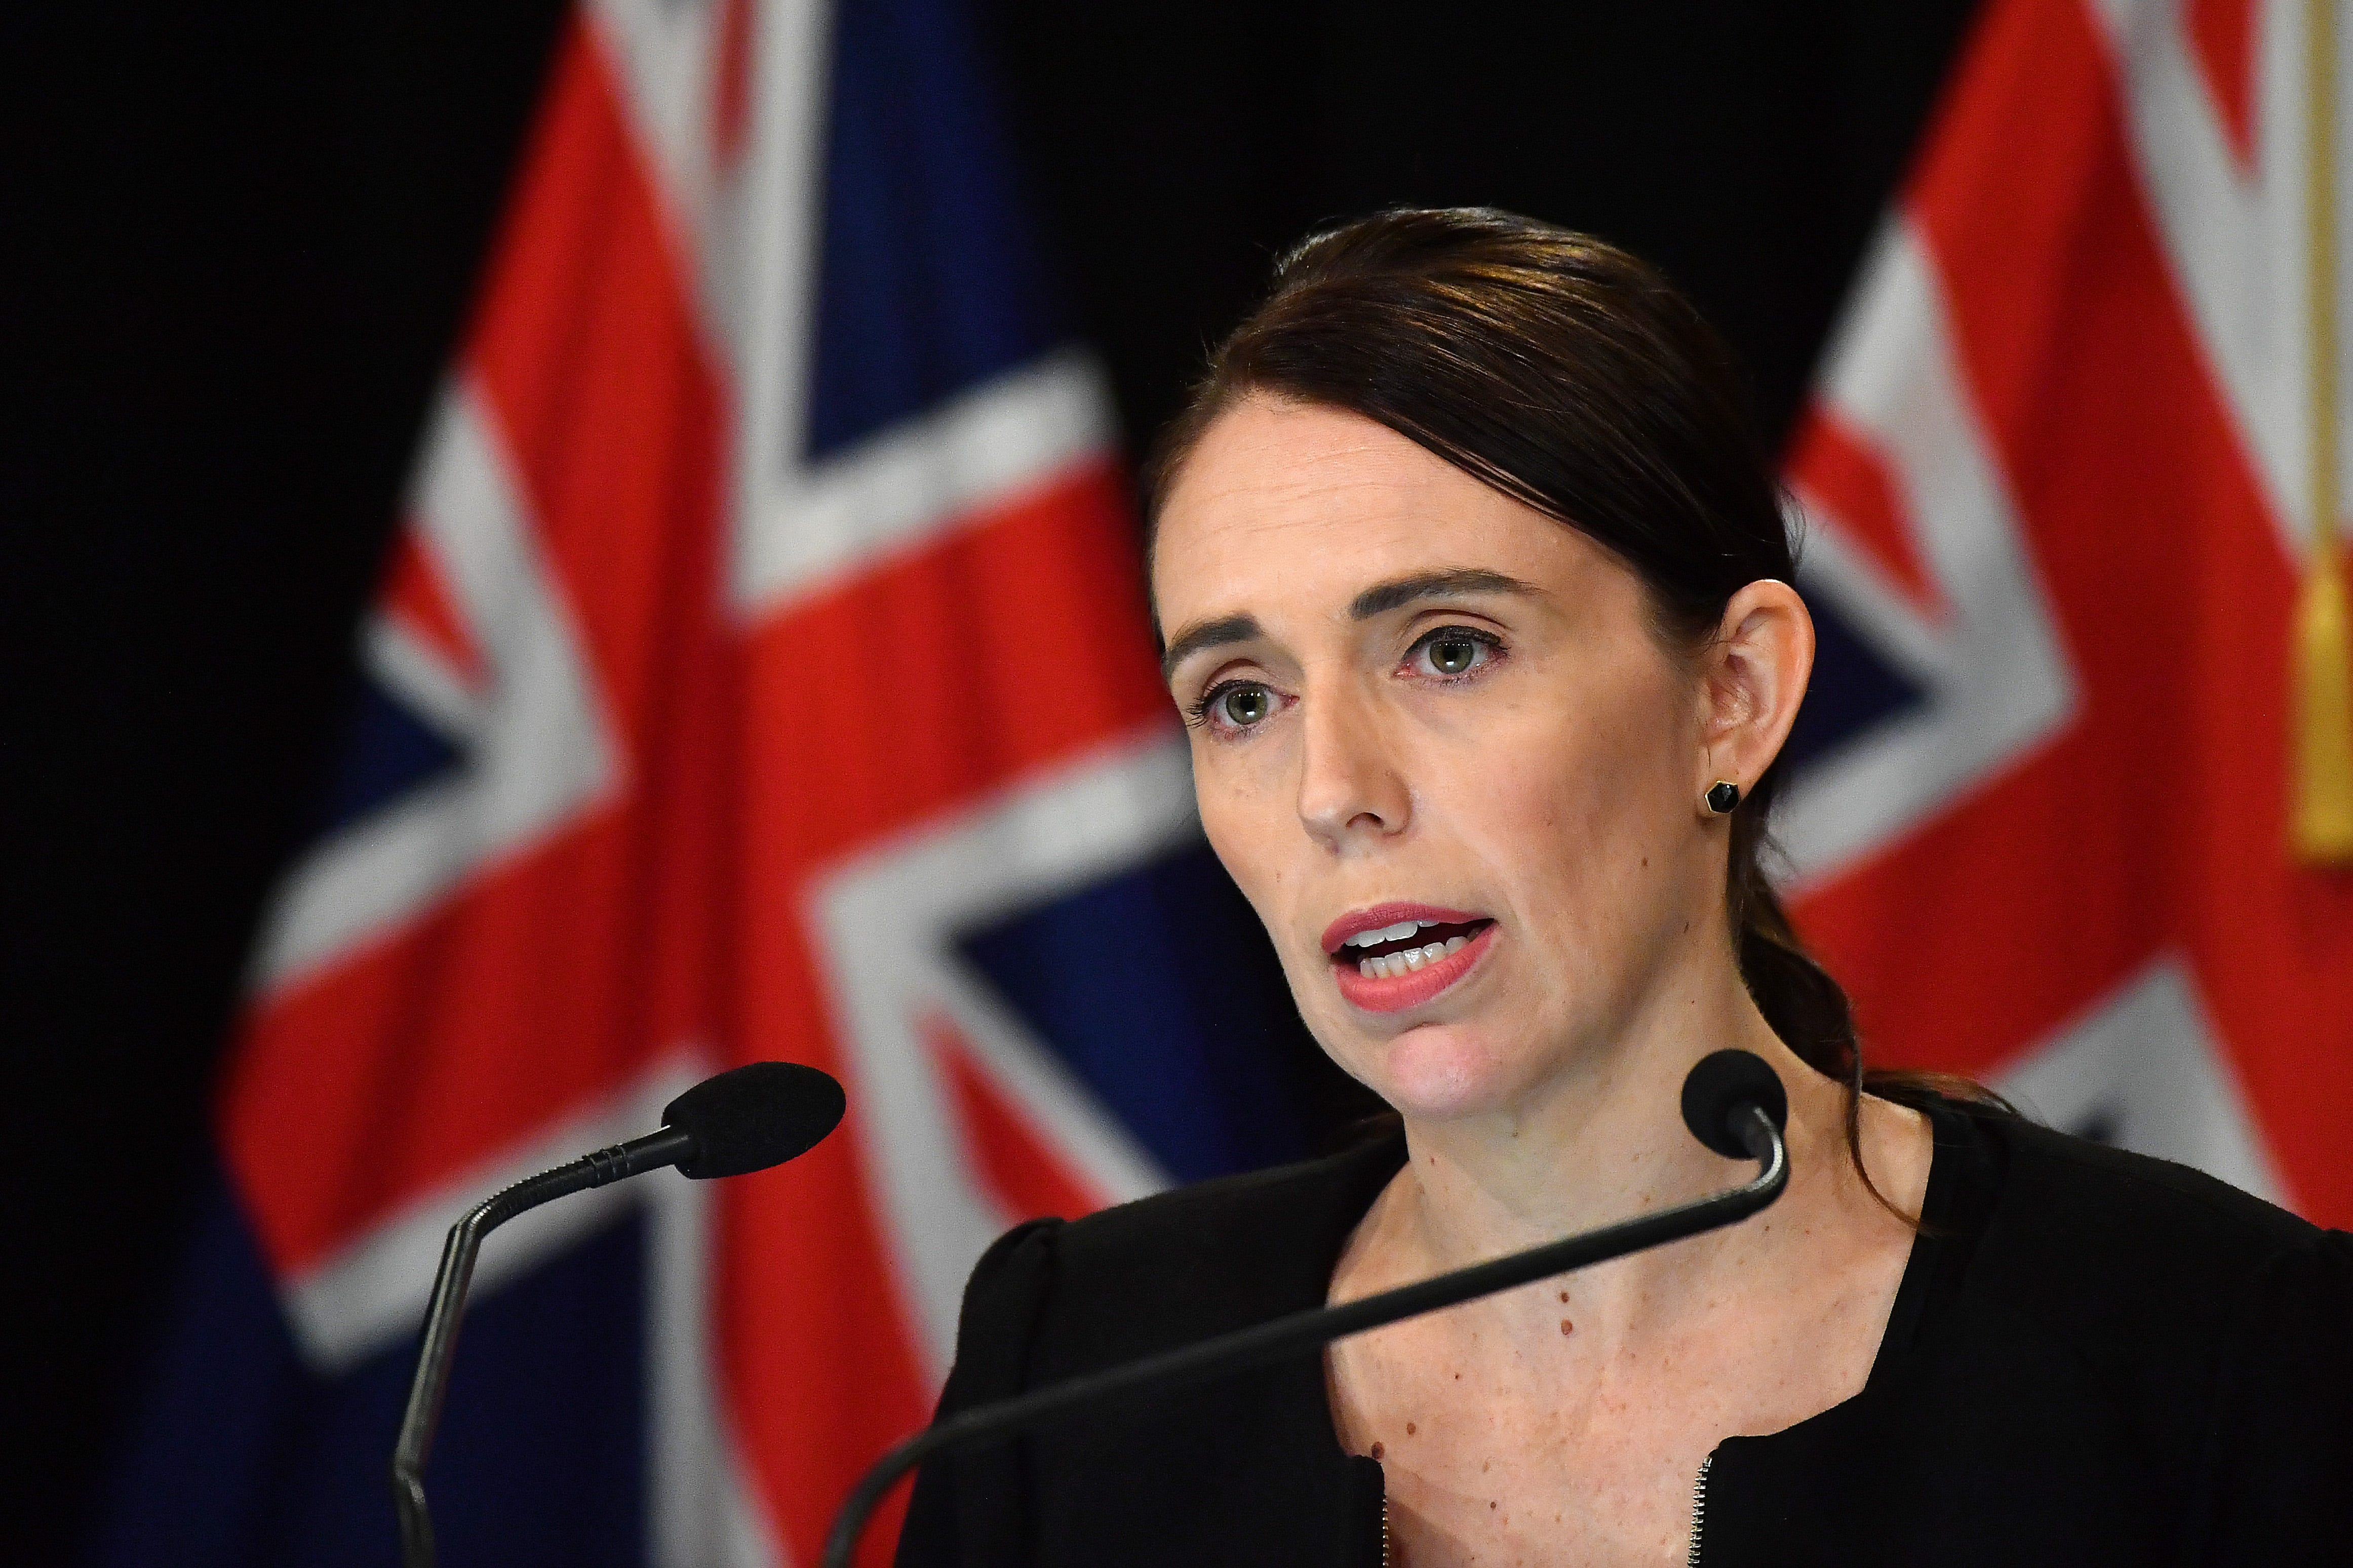 New Zealand Prime Minister Jacinda Ardern speaks to the media on March 16, 2019, in Wellington, New Zealand. At least 49 people are confirmed dead, with more than 40 people injured following attacks on two mosques in Christchurch on Friday afternoon. 41 of the victims were killed at Al Noor Mosque on Deans Avenue and seven died at Linwood mosque. Another victim died later in Christchurch hospital. Three people are in custody over the mass shootings. An Australian man has been charged with murder and will appear in court today.